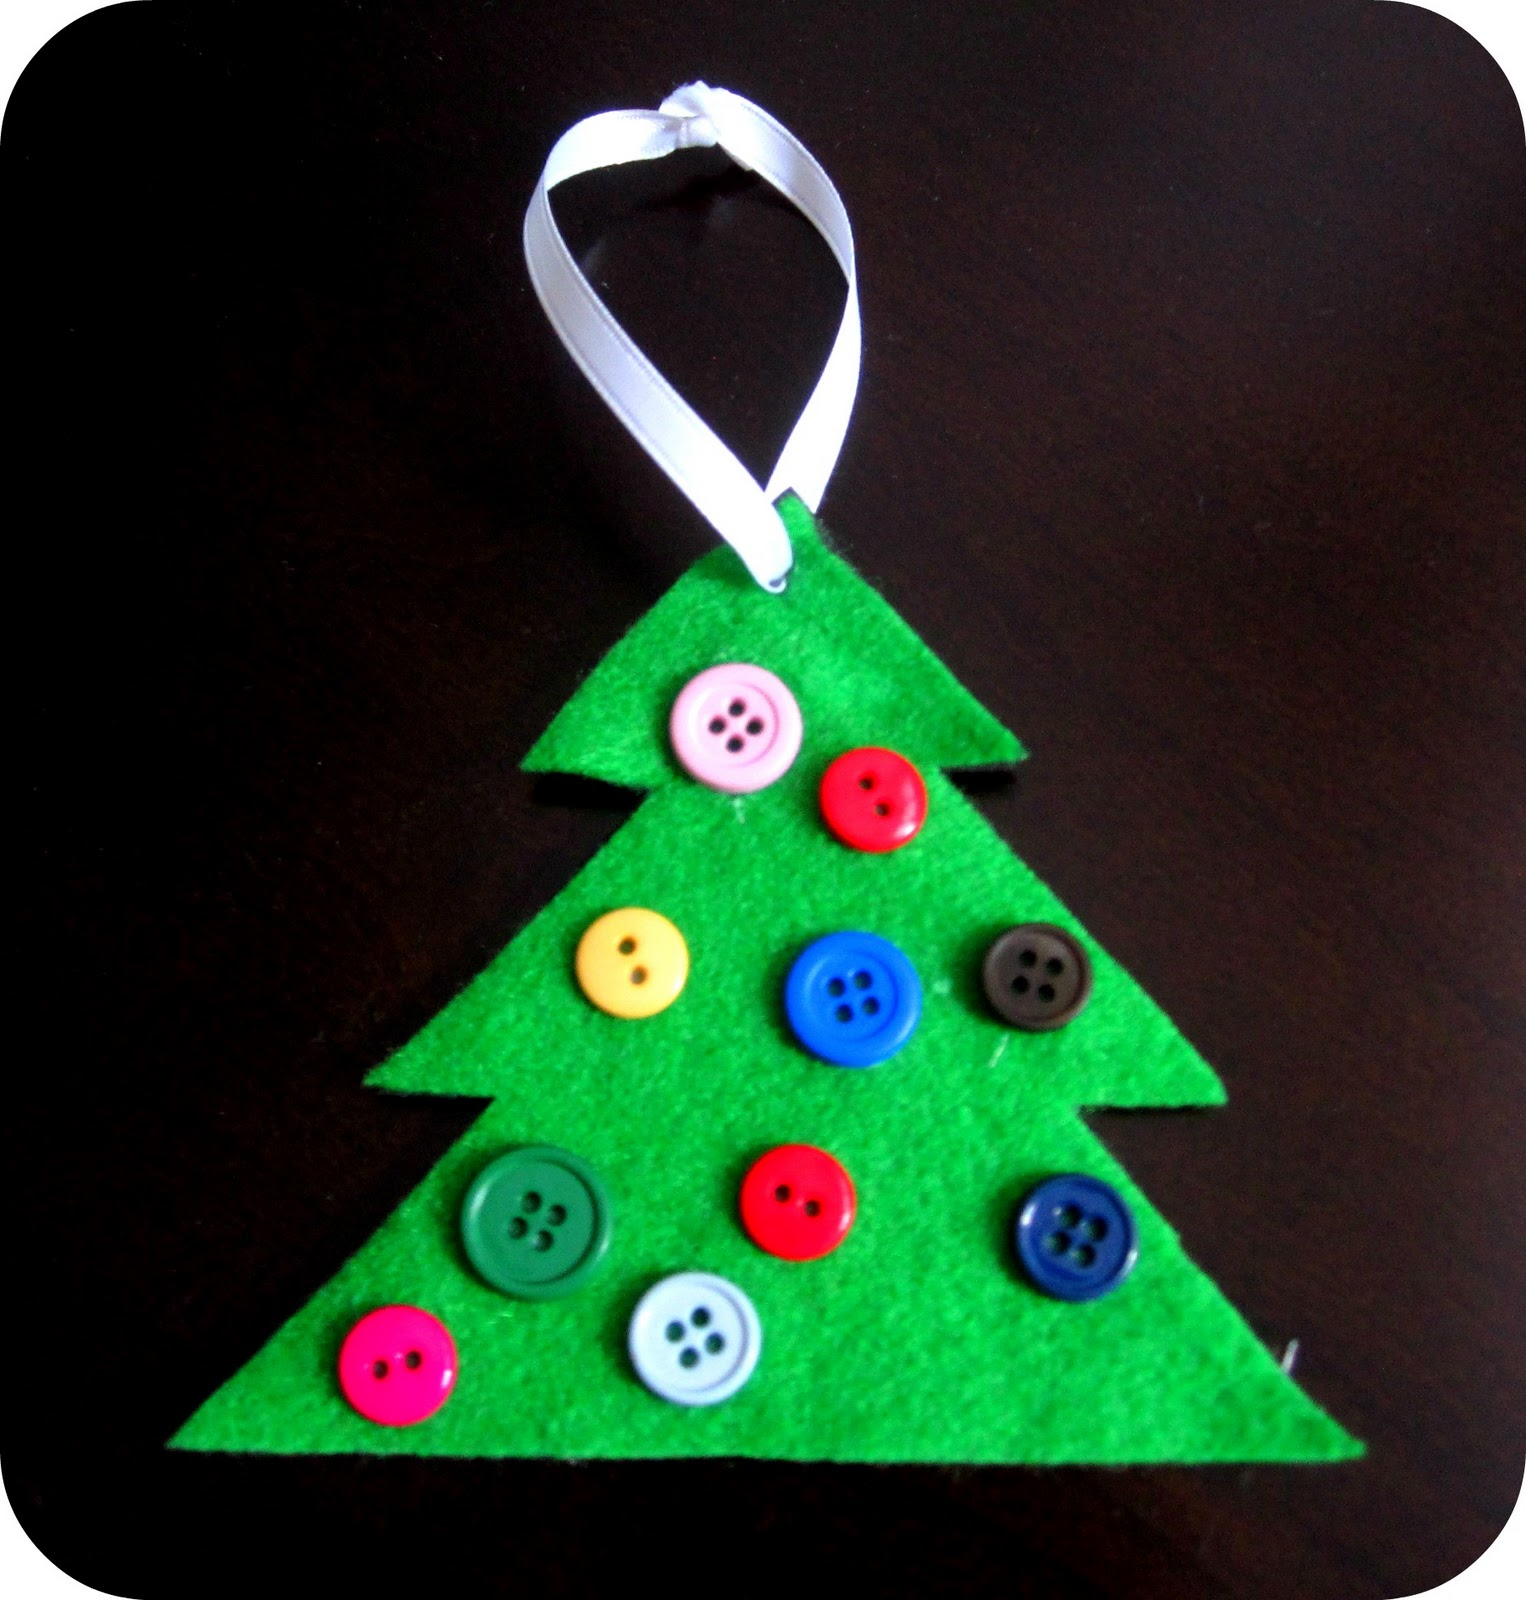 Button Christmas Tree Ornament: Cute & Simple! | hands on ...